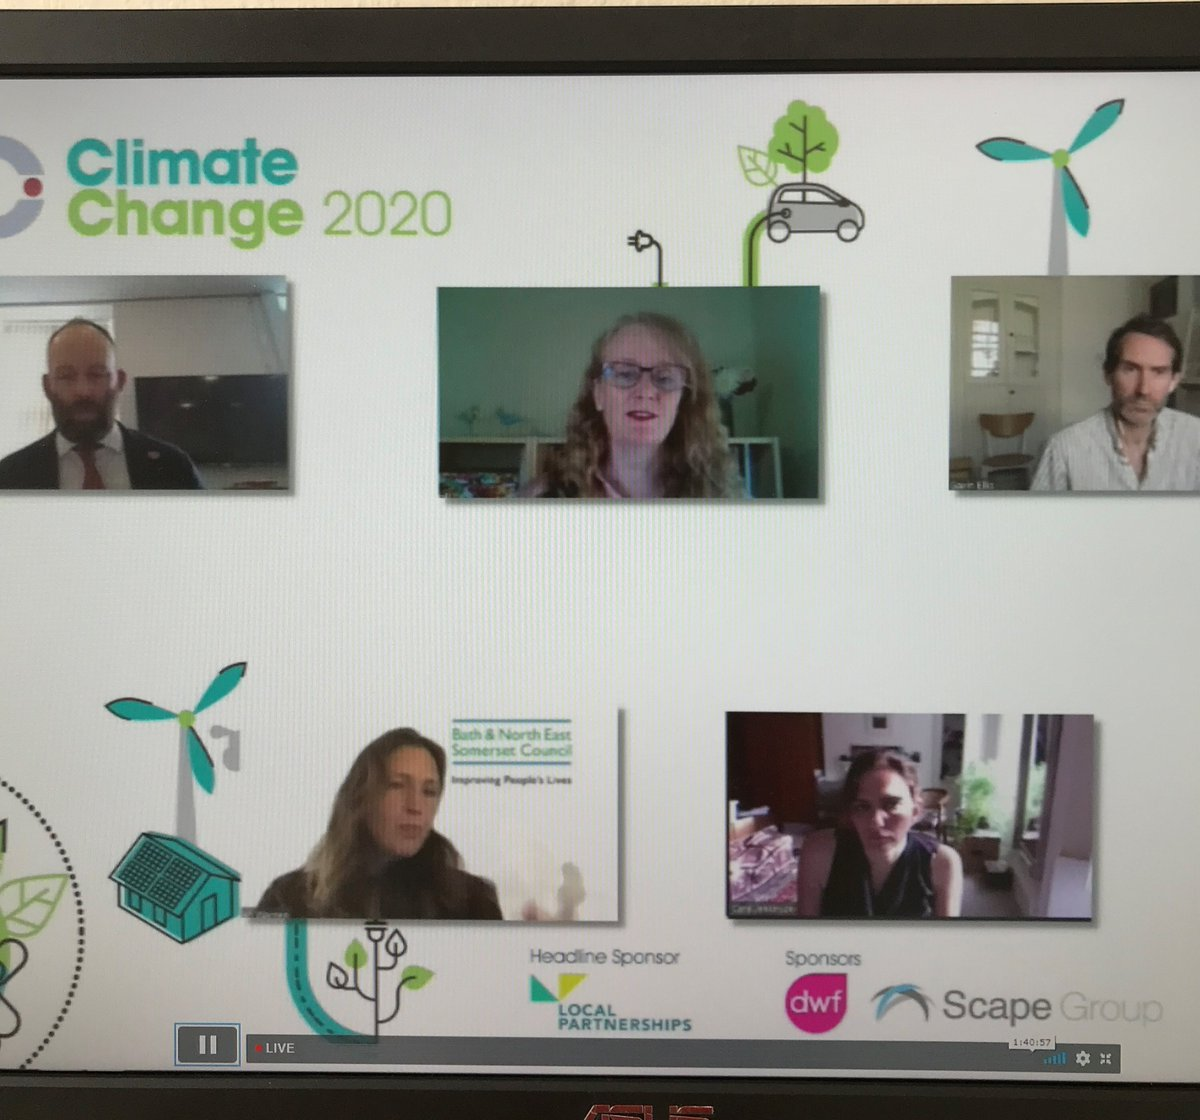 """Using innovative and creative ways to communicate, including social media, can help achieve community engagement in the green agenda"" says @LP_localgov Jo Wall #LGCClimateChange"